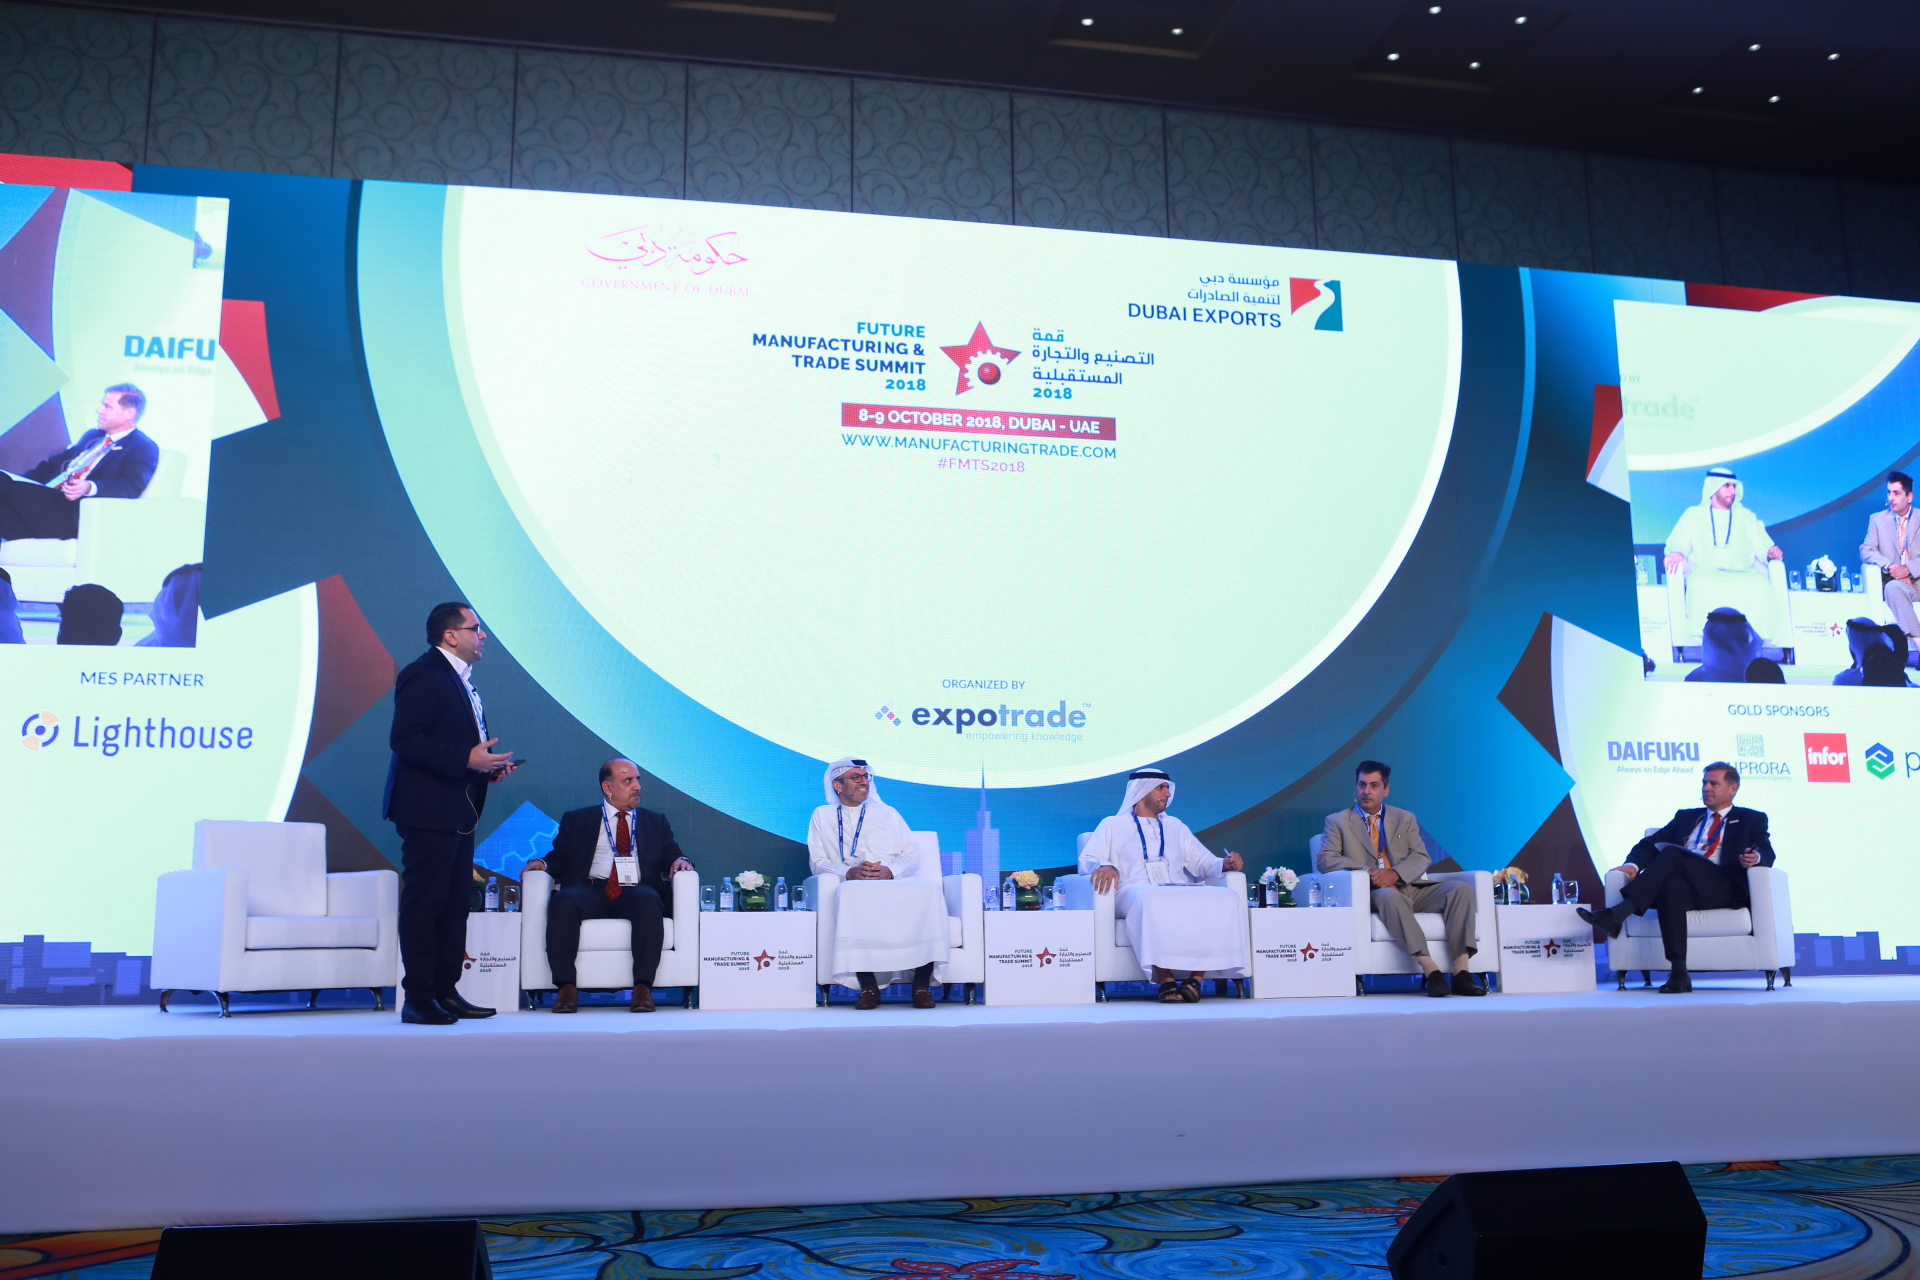 Moderating in Dubai Government Manufacturing and Trade Summit 2018